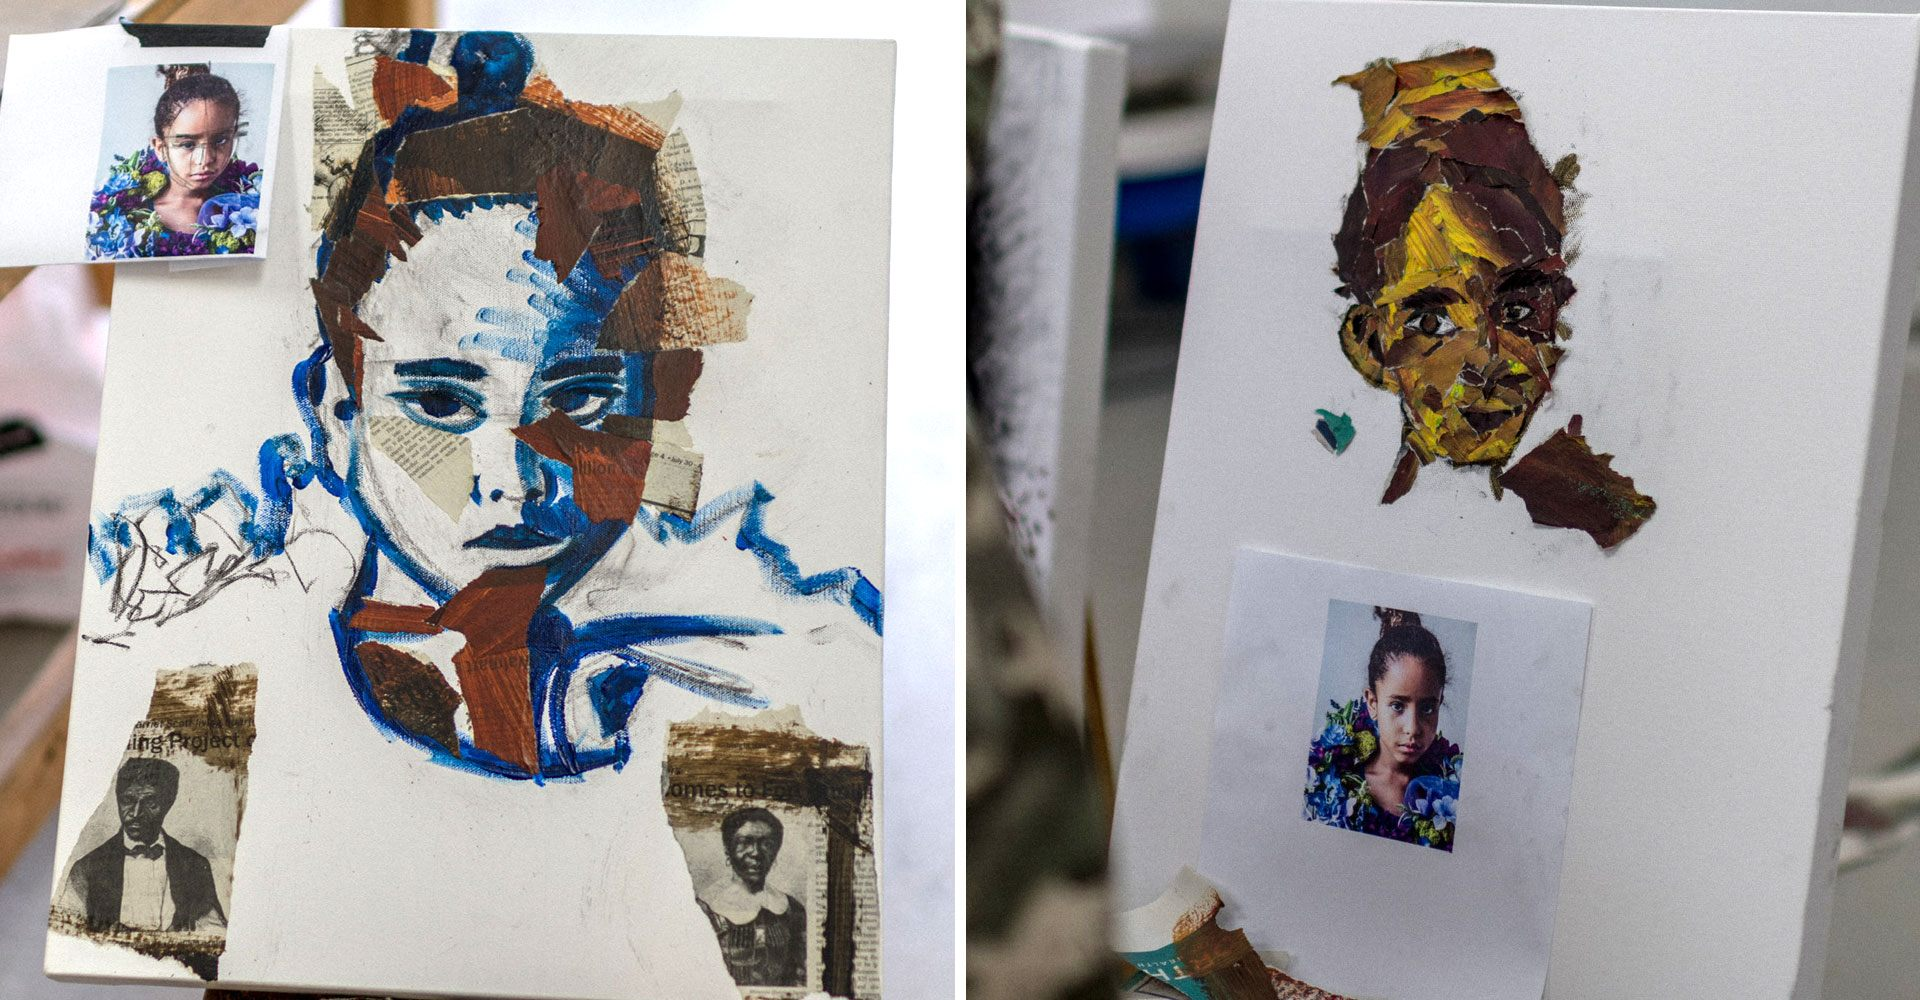 Two portrait multimedia works in progress